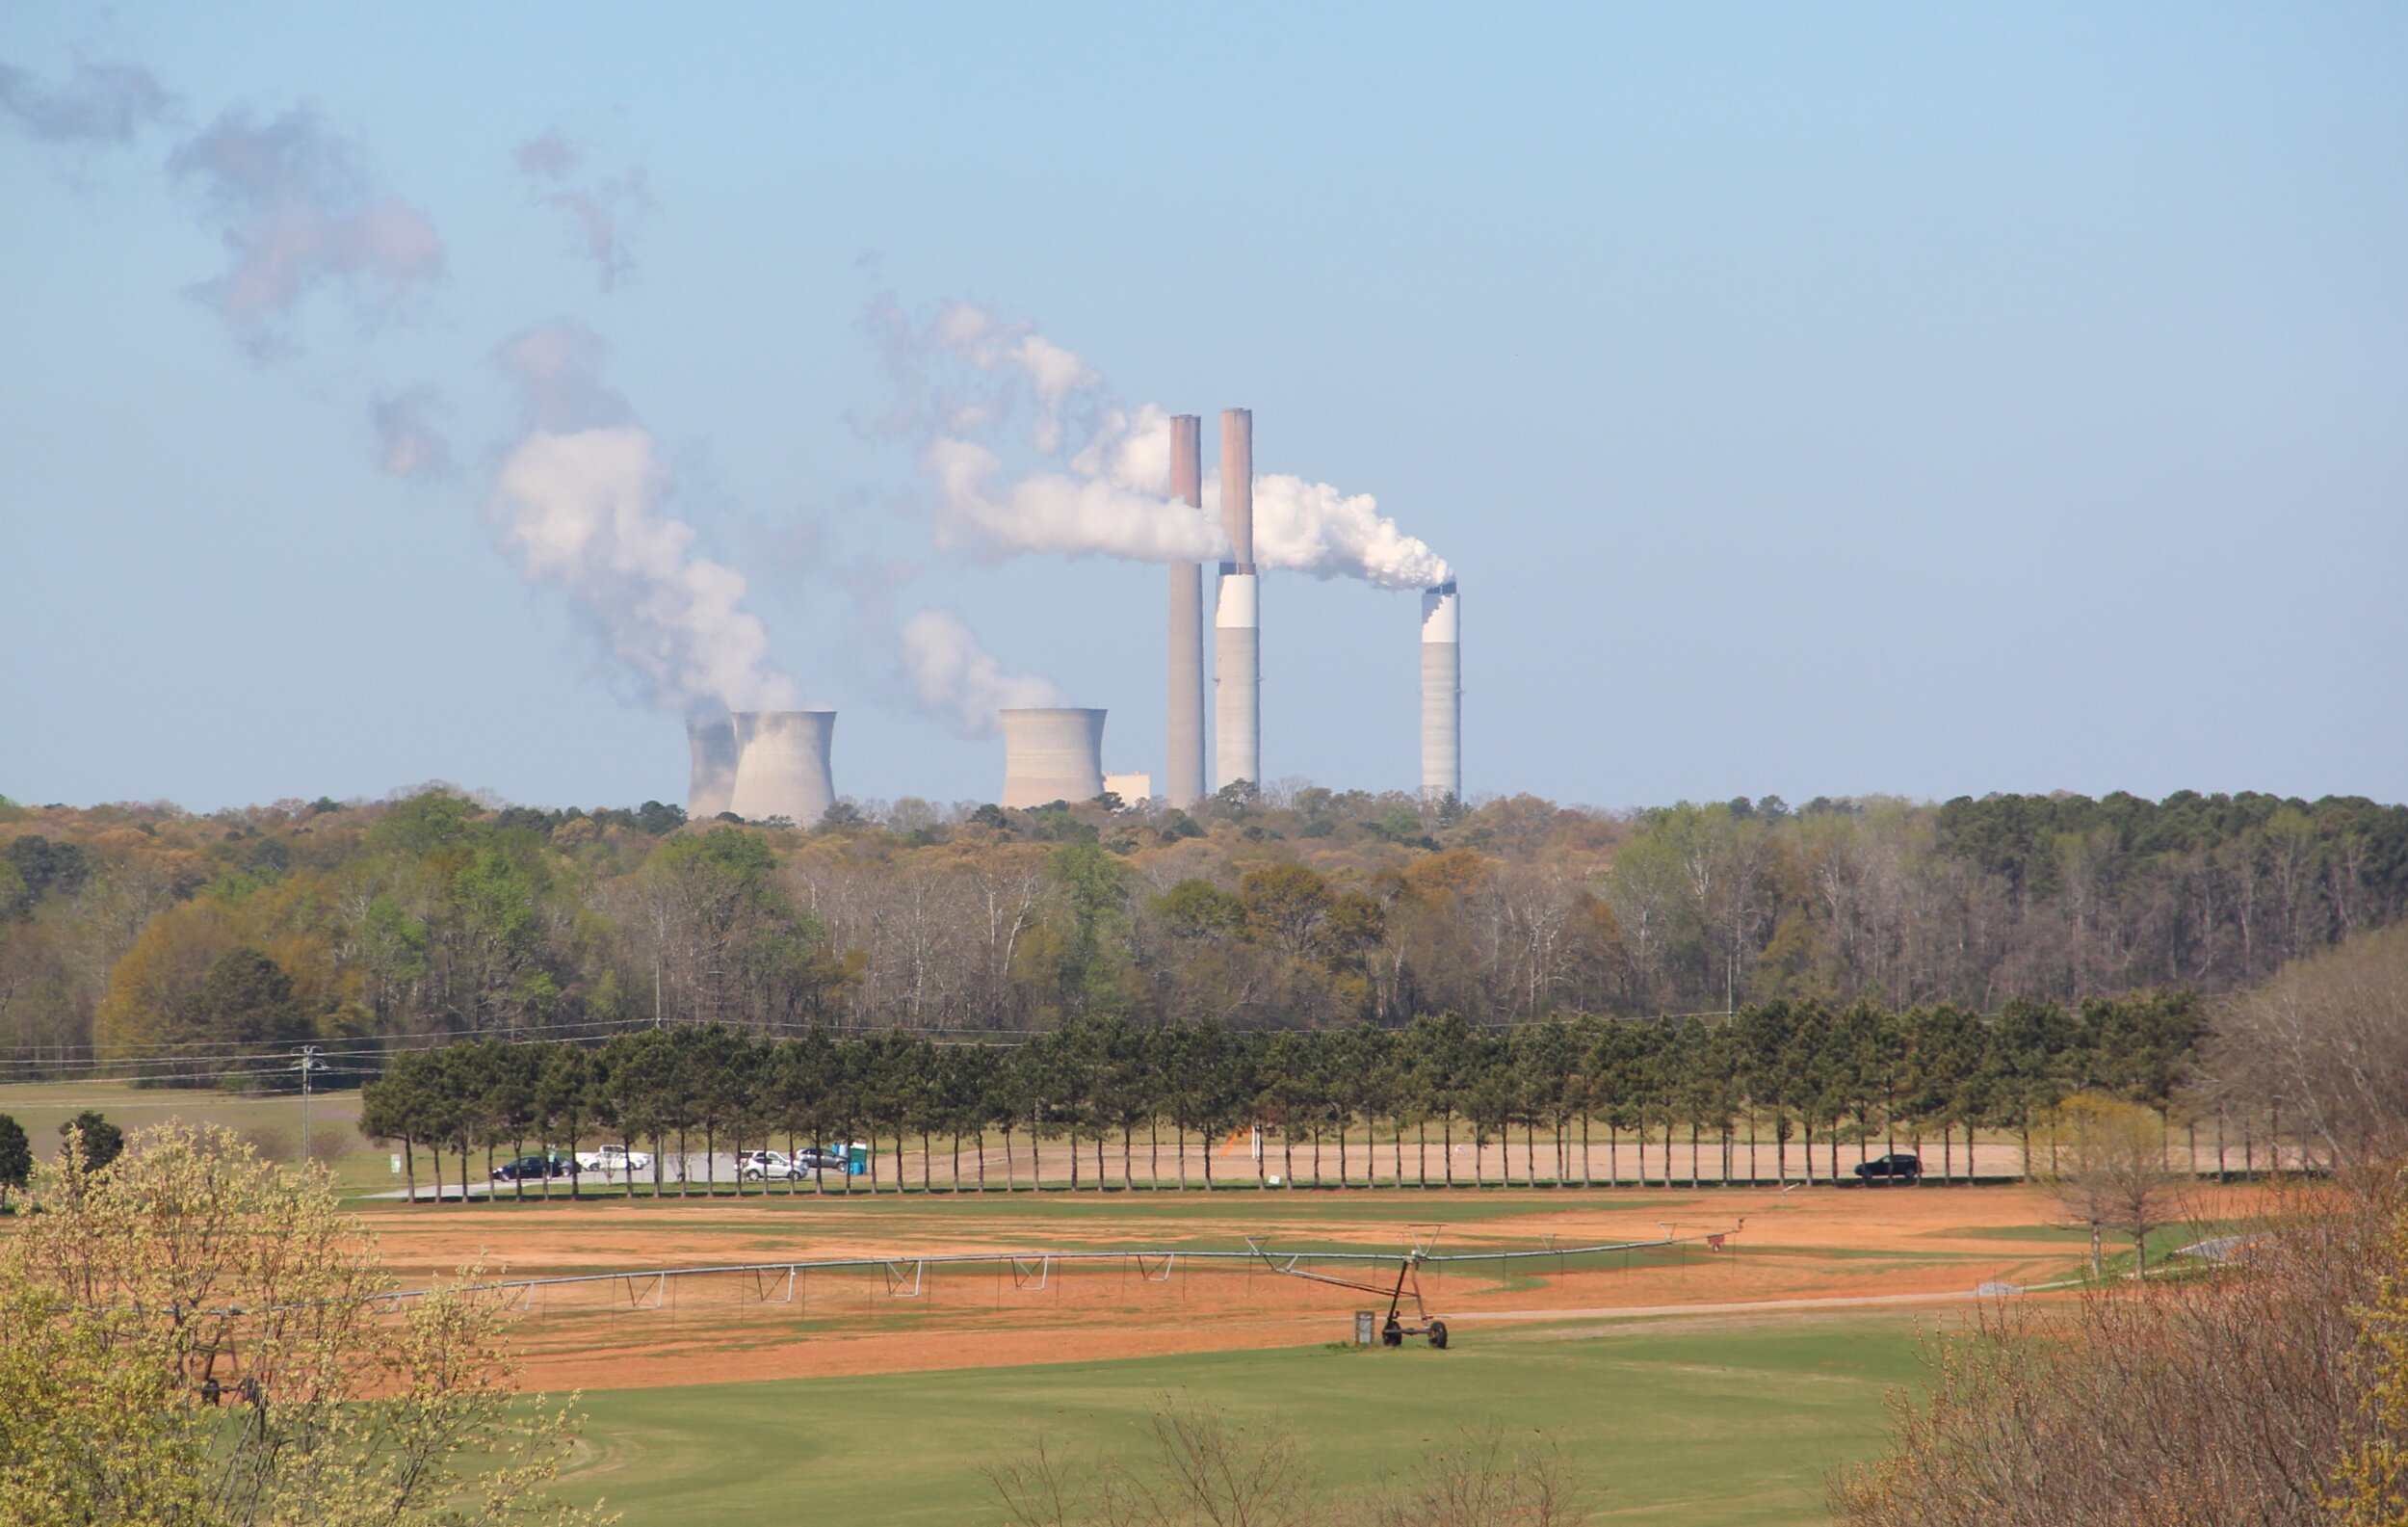 Southern, Duke, Dominion targeted over CO2 goals